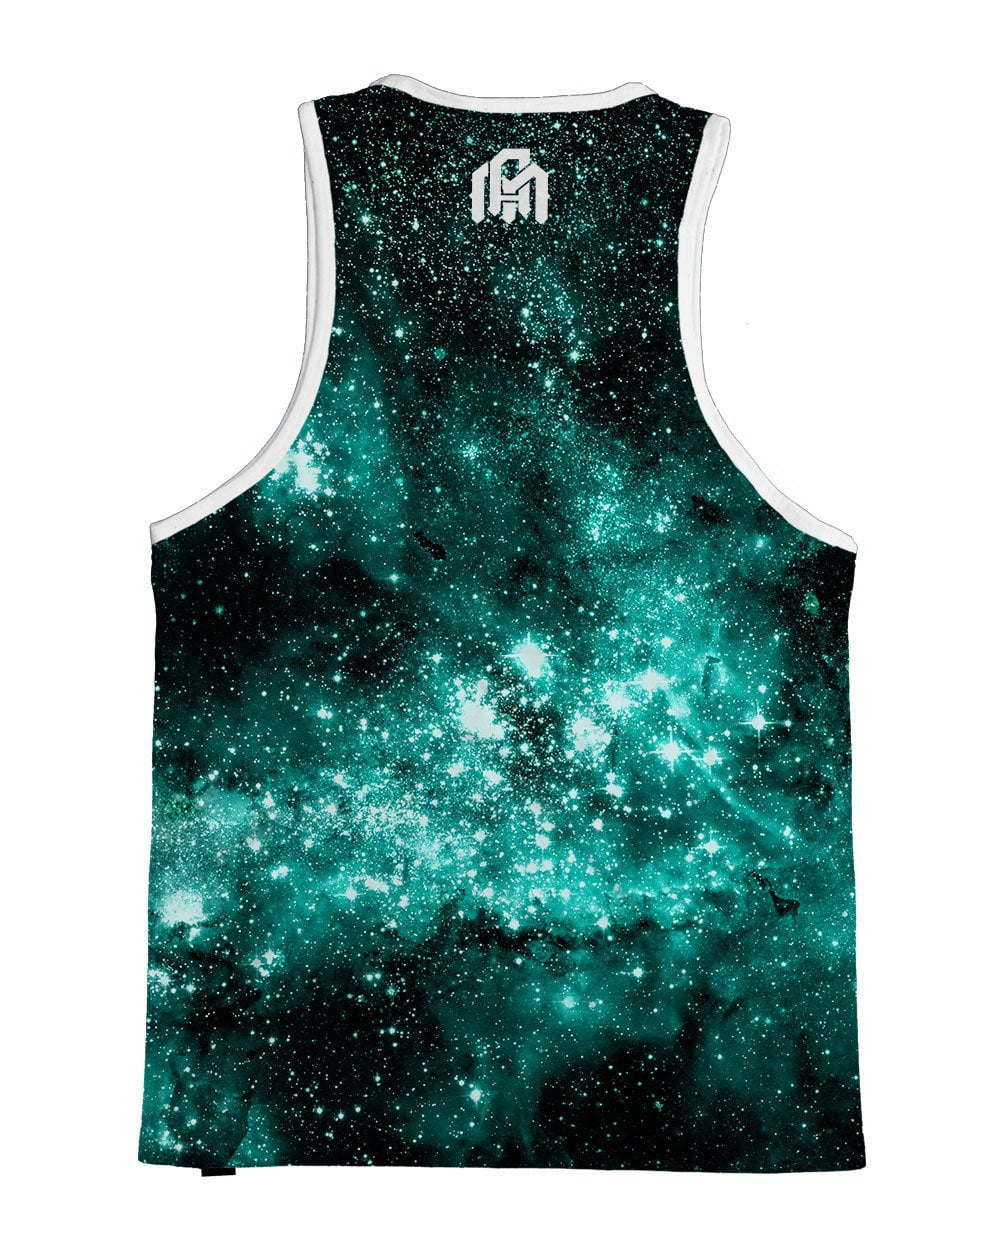 Team Electric Men's Tank Top-Back